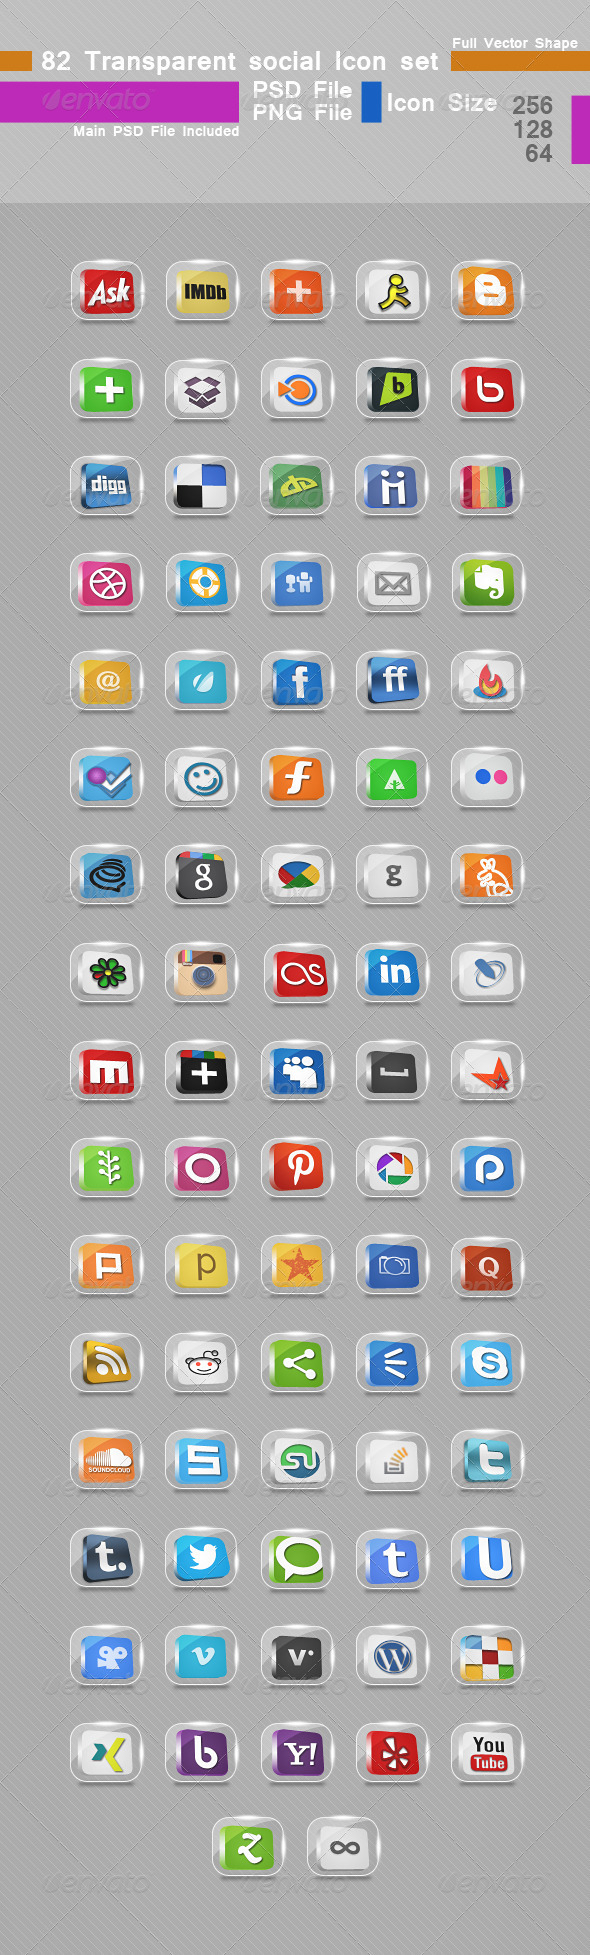 82 Transparent Social Icon set - Media Icons